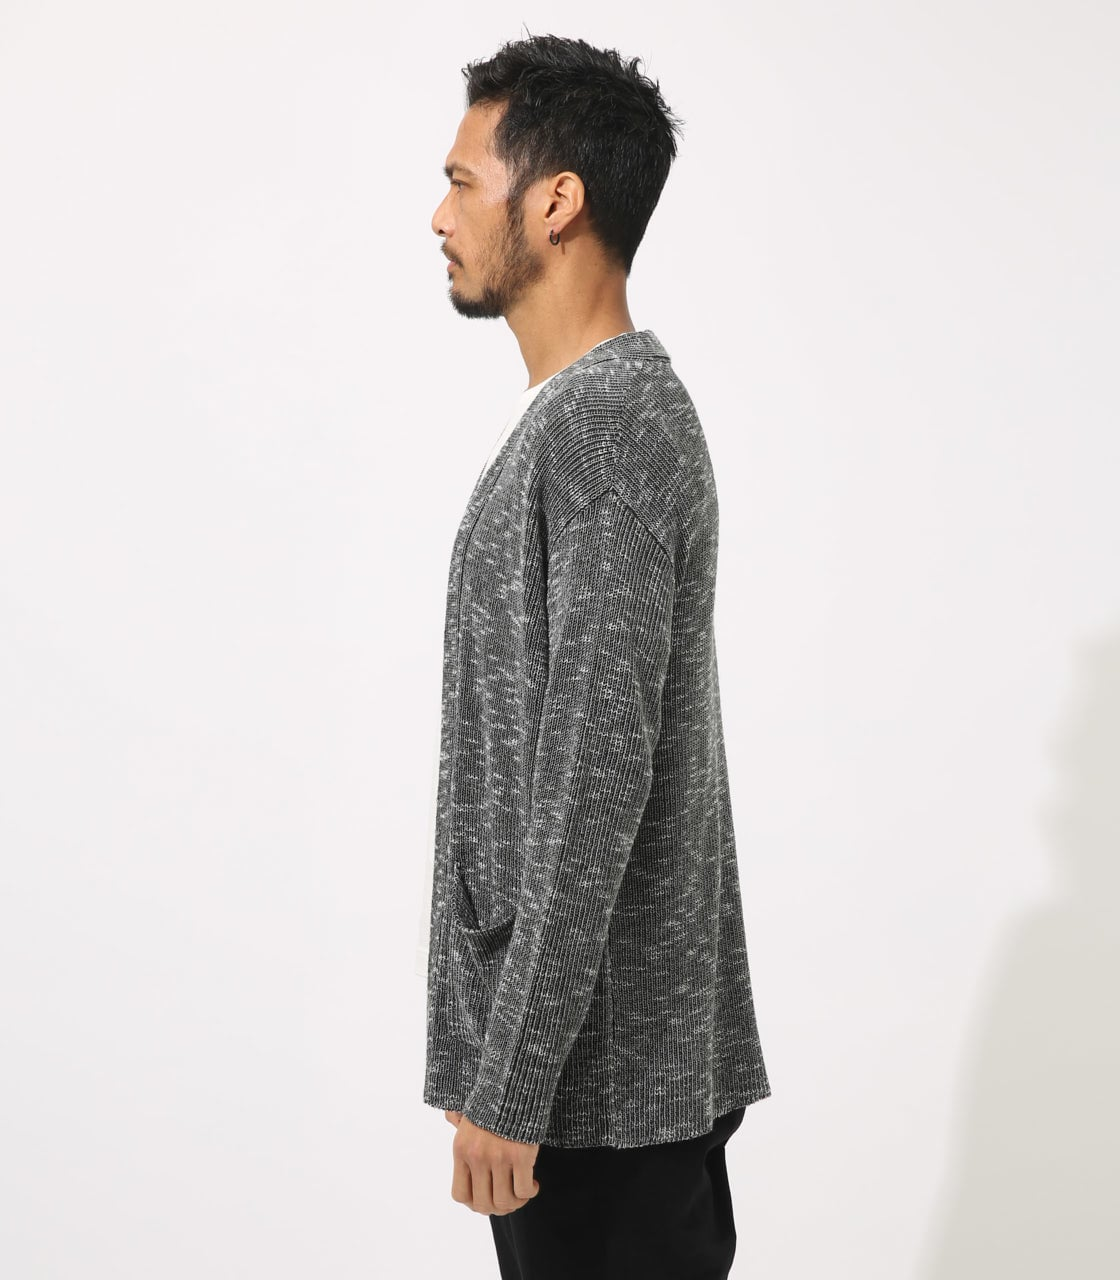 【AZUL BY MOUSSY】RIB STITCH CARDIGAN 詳細画像 柄BLK 6